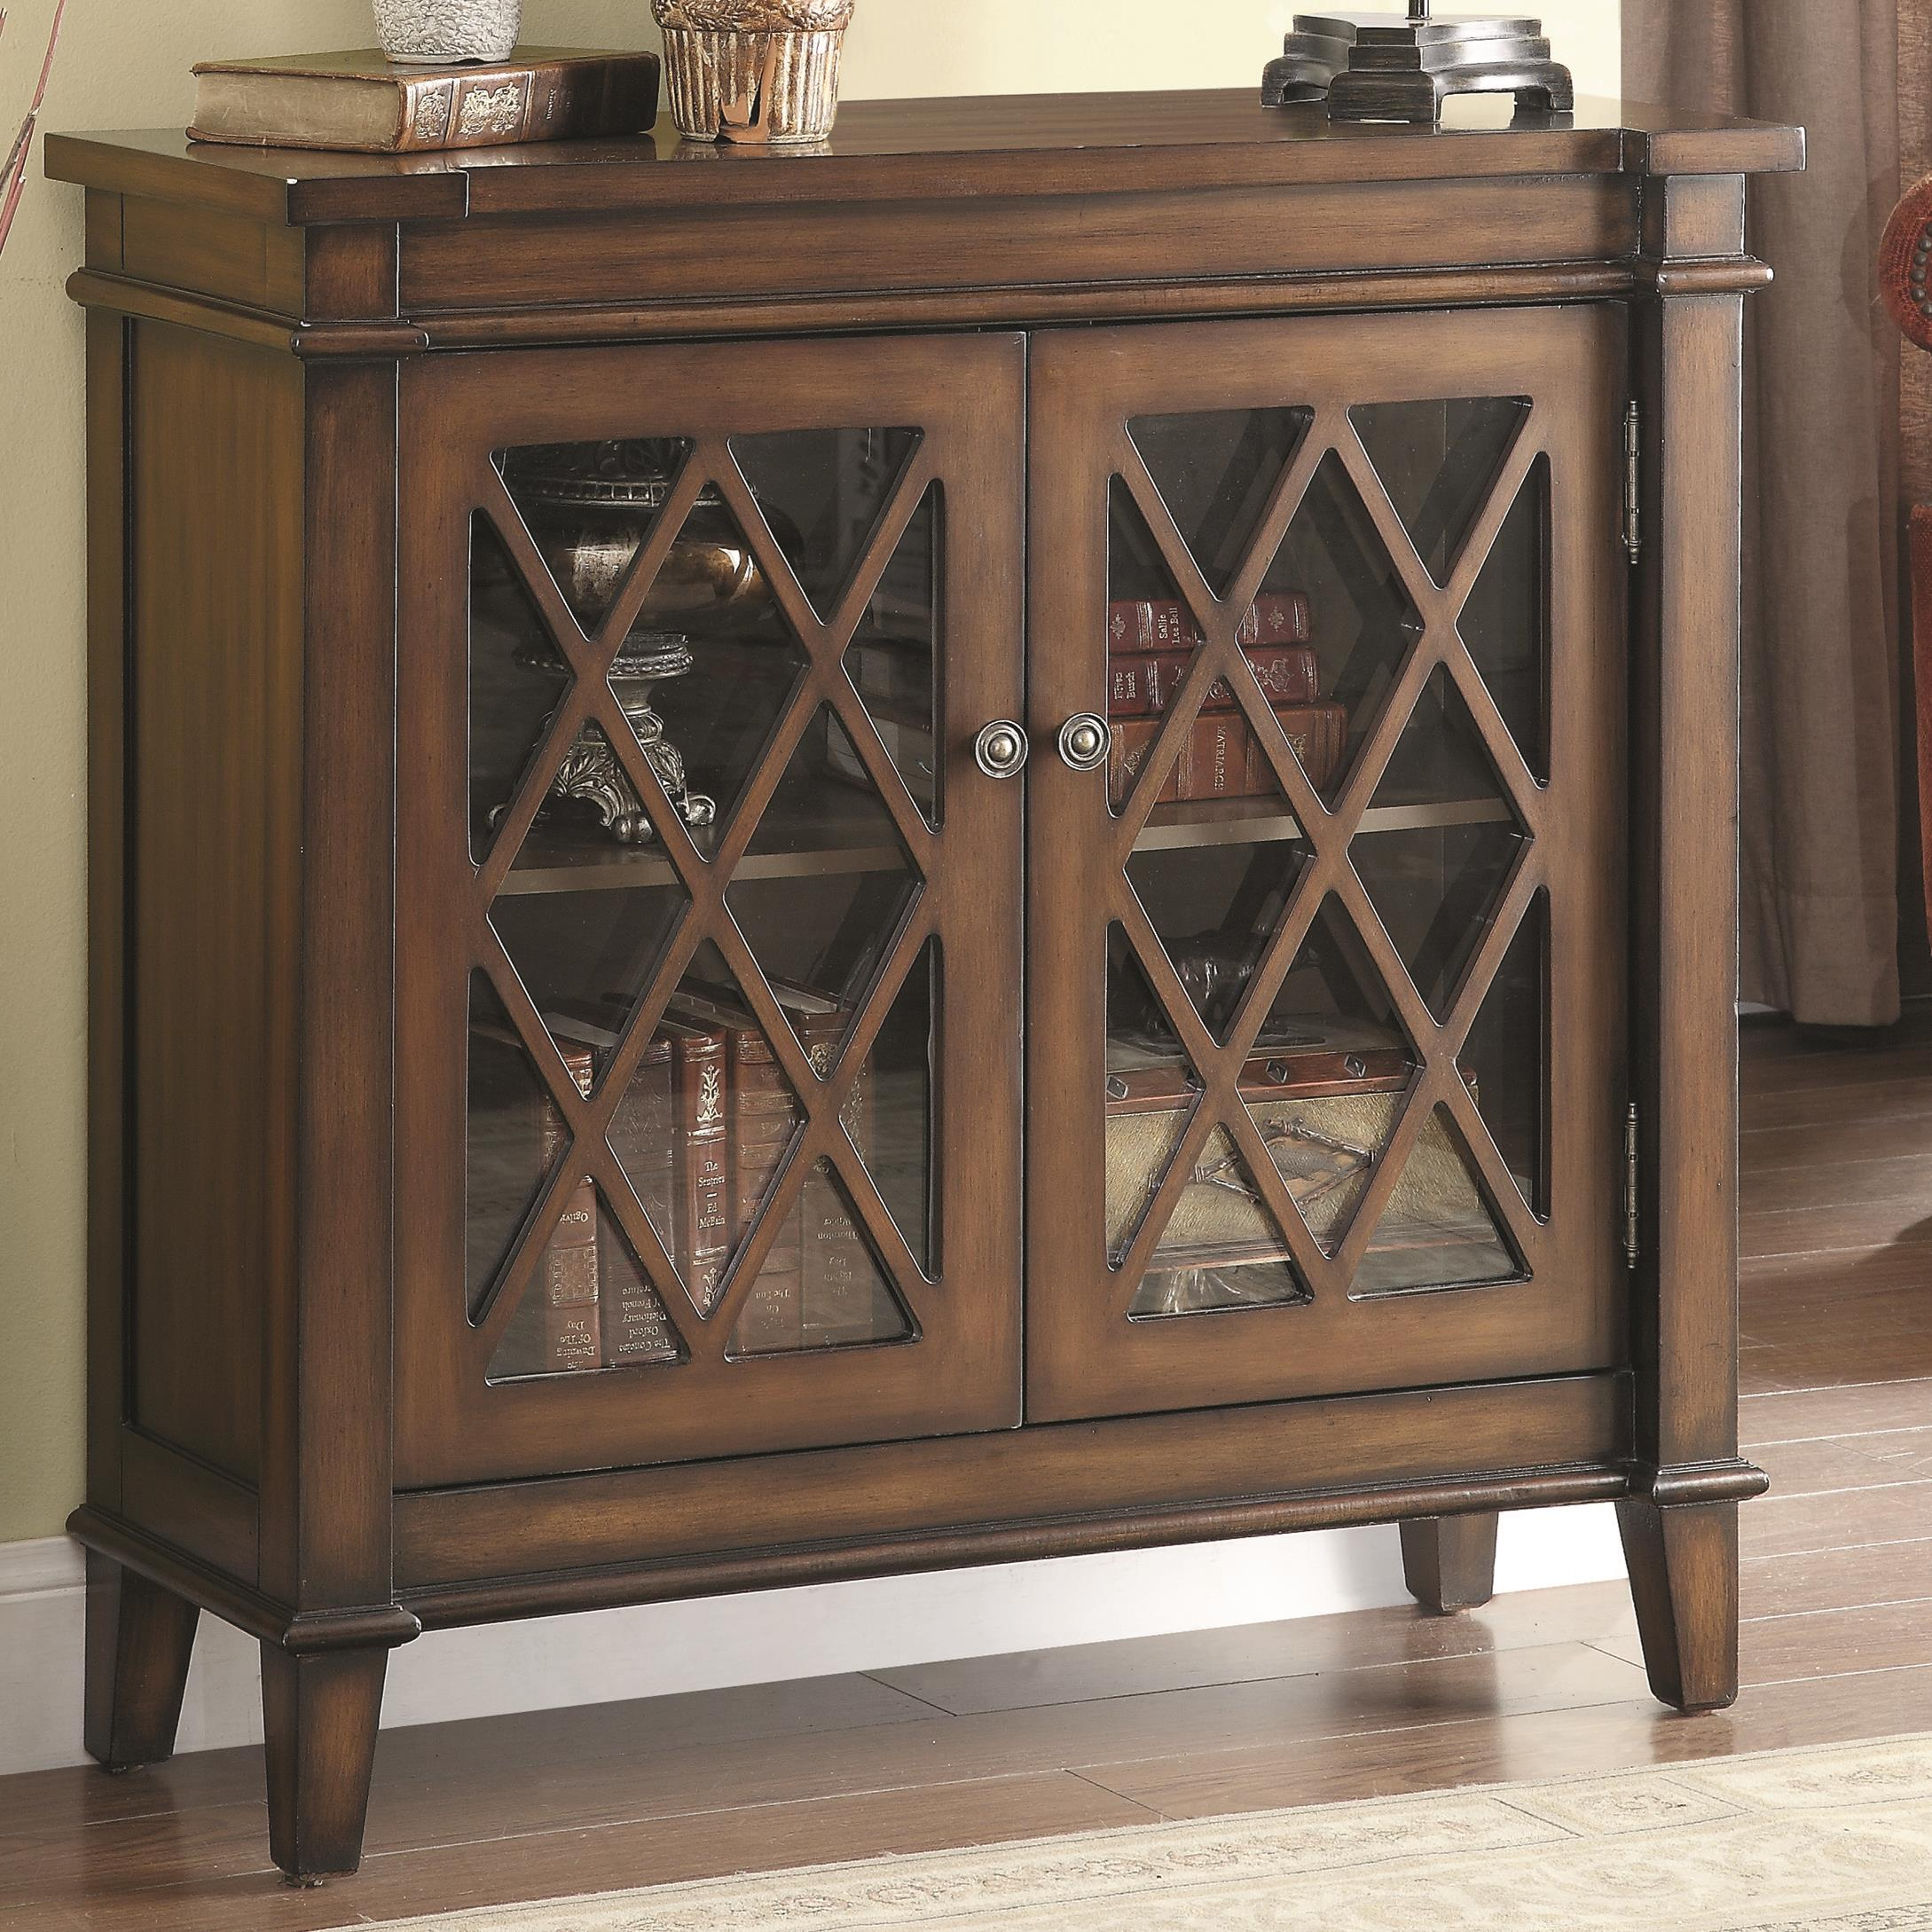 Coaster Accent Cabinets Accent Cabinet - Item Number: 950348